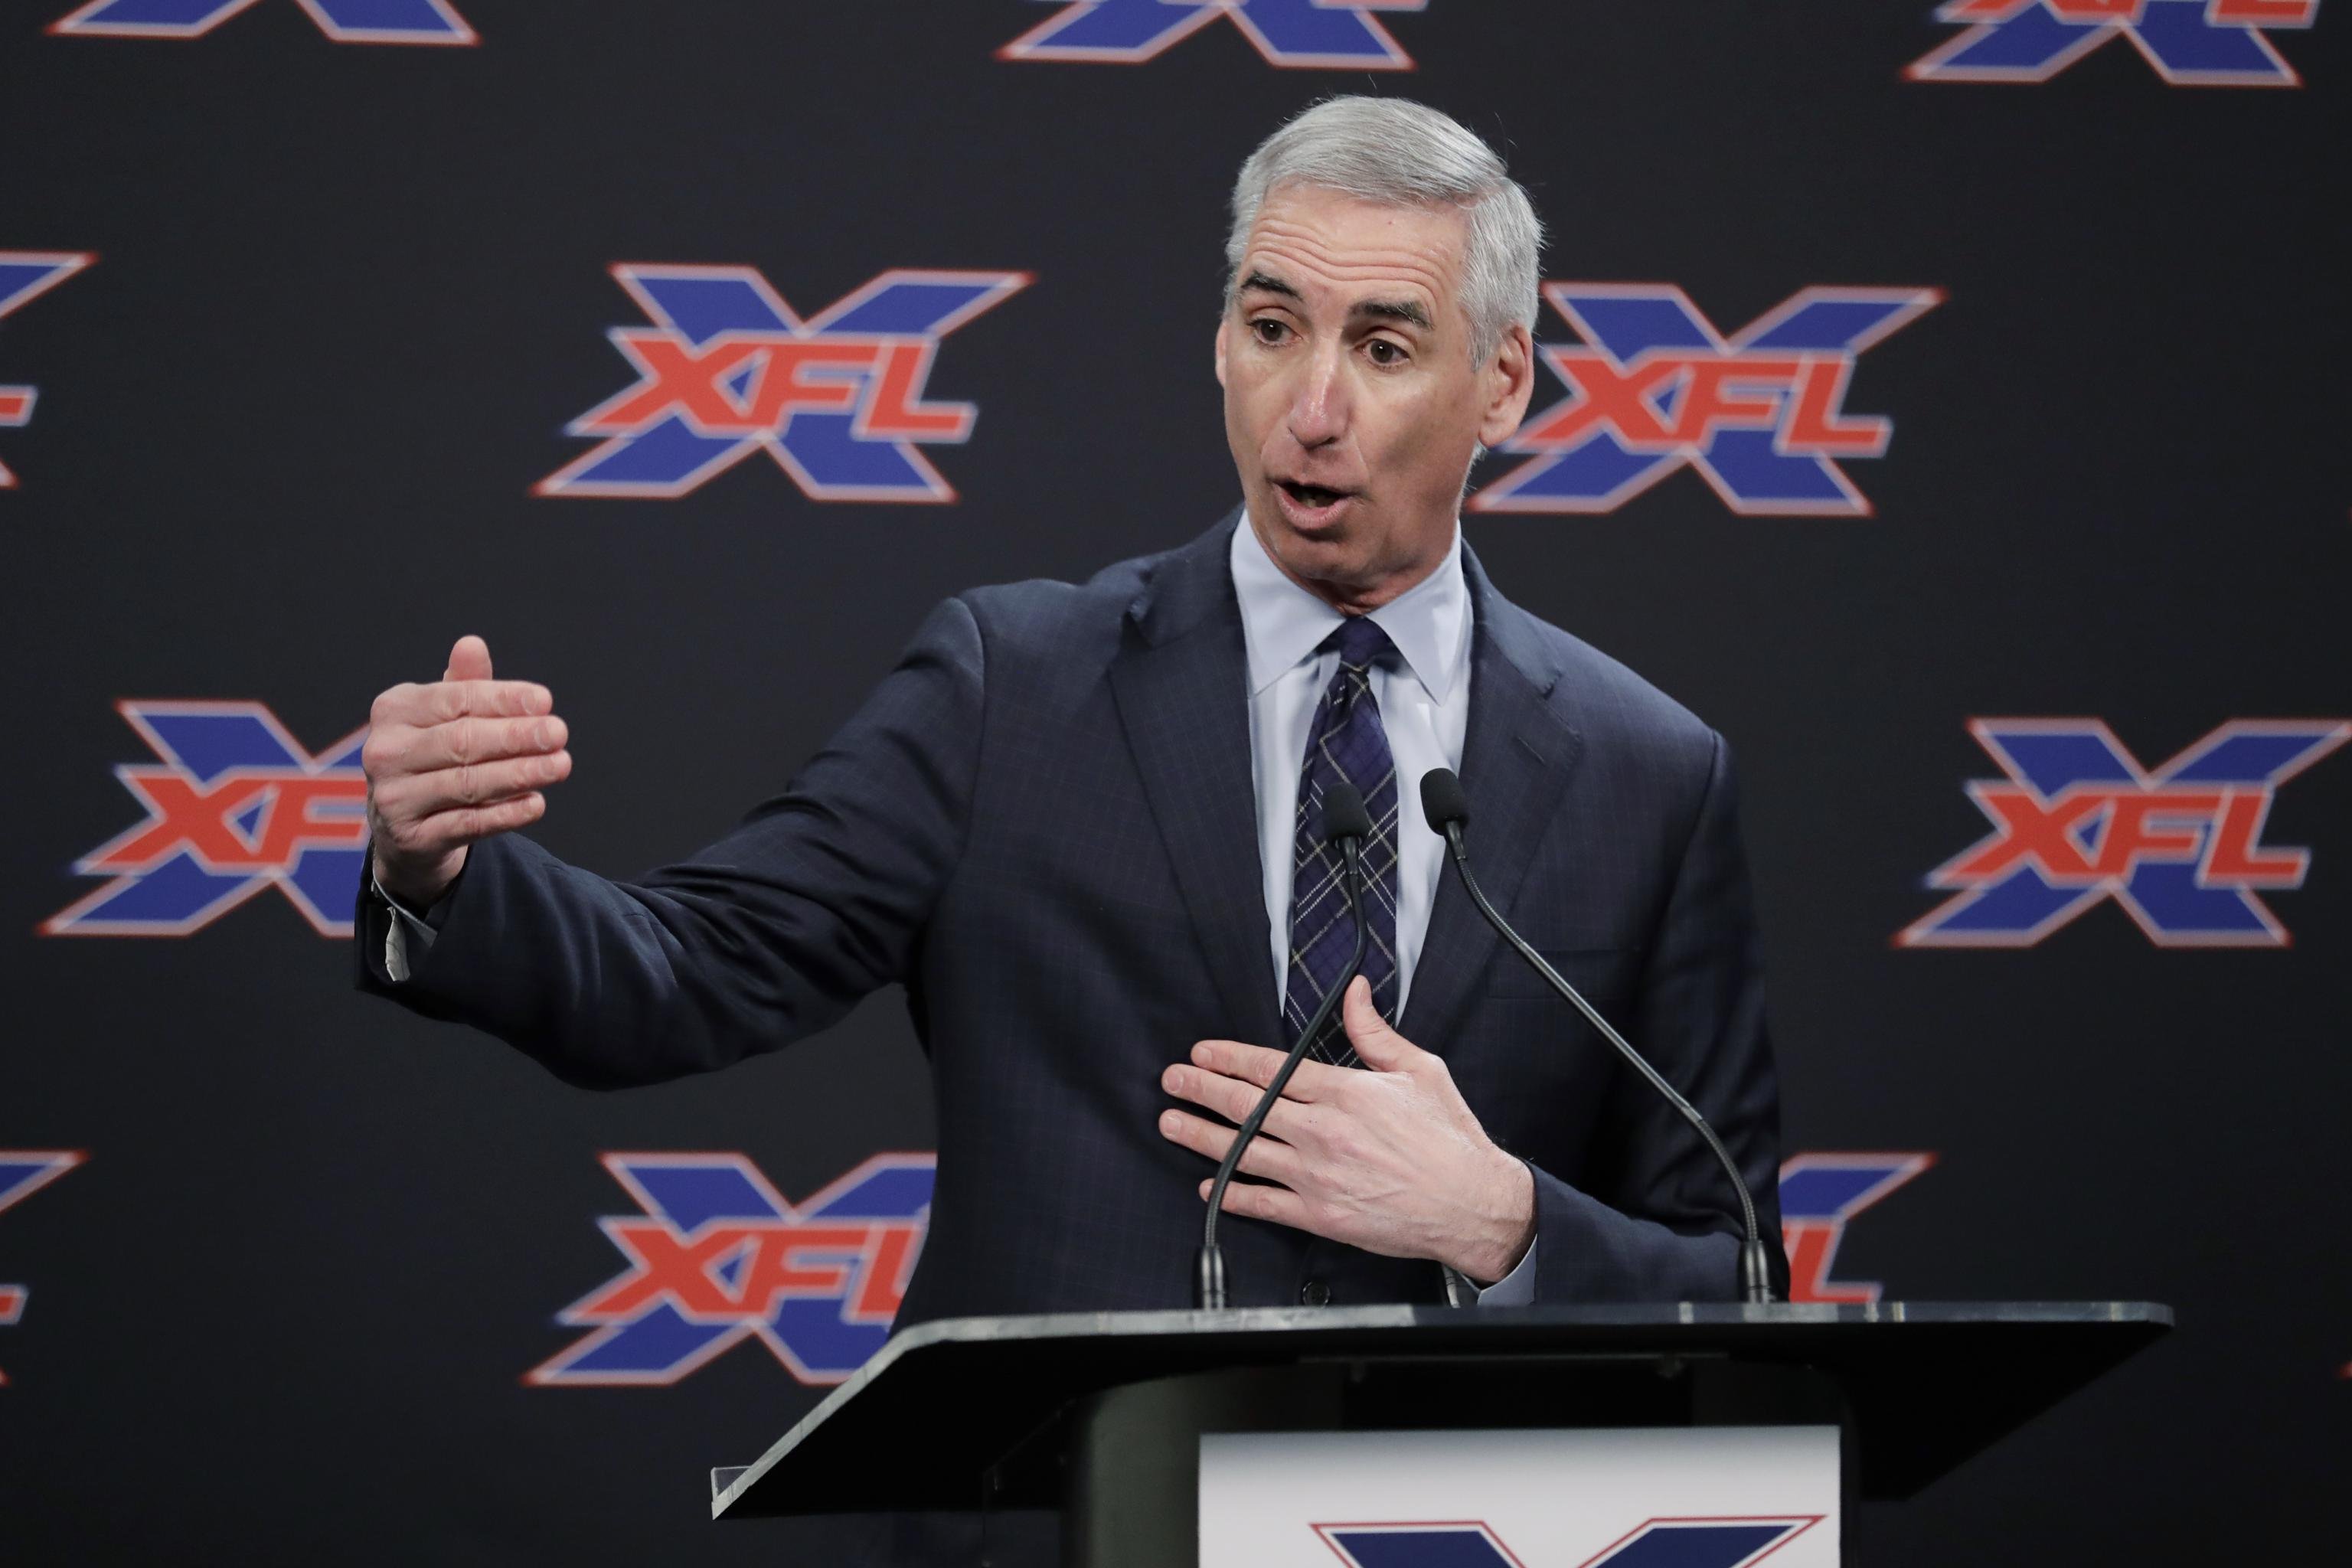 Vince McMahon's XFL 2020 TV Schedule Released with ESPN, ABC, Fox Sports,  FS1 | Bleacher Report | Latest News, Videos and Highlights